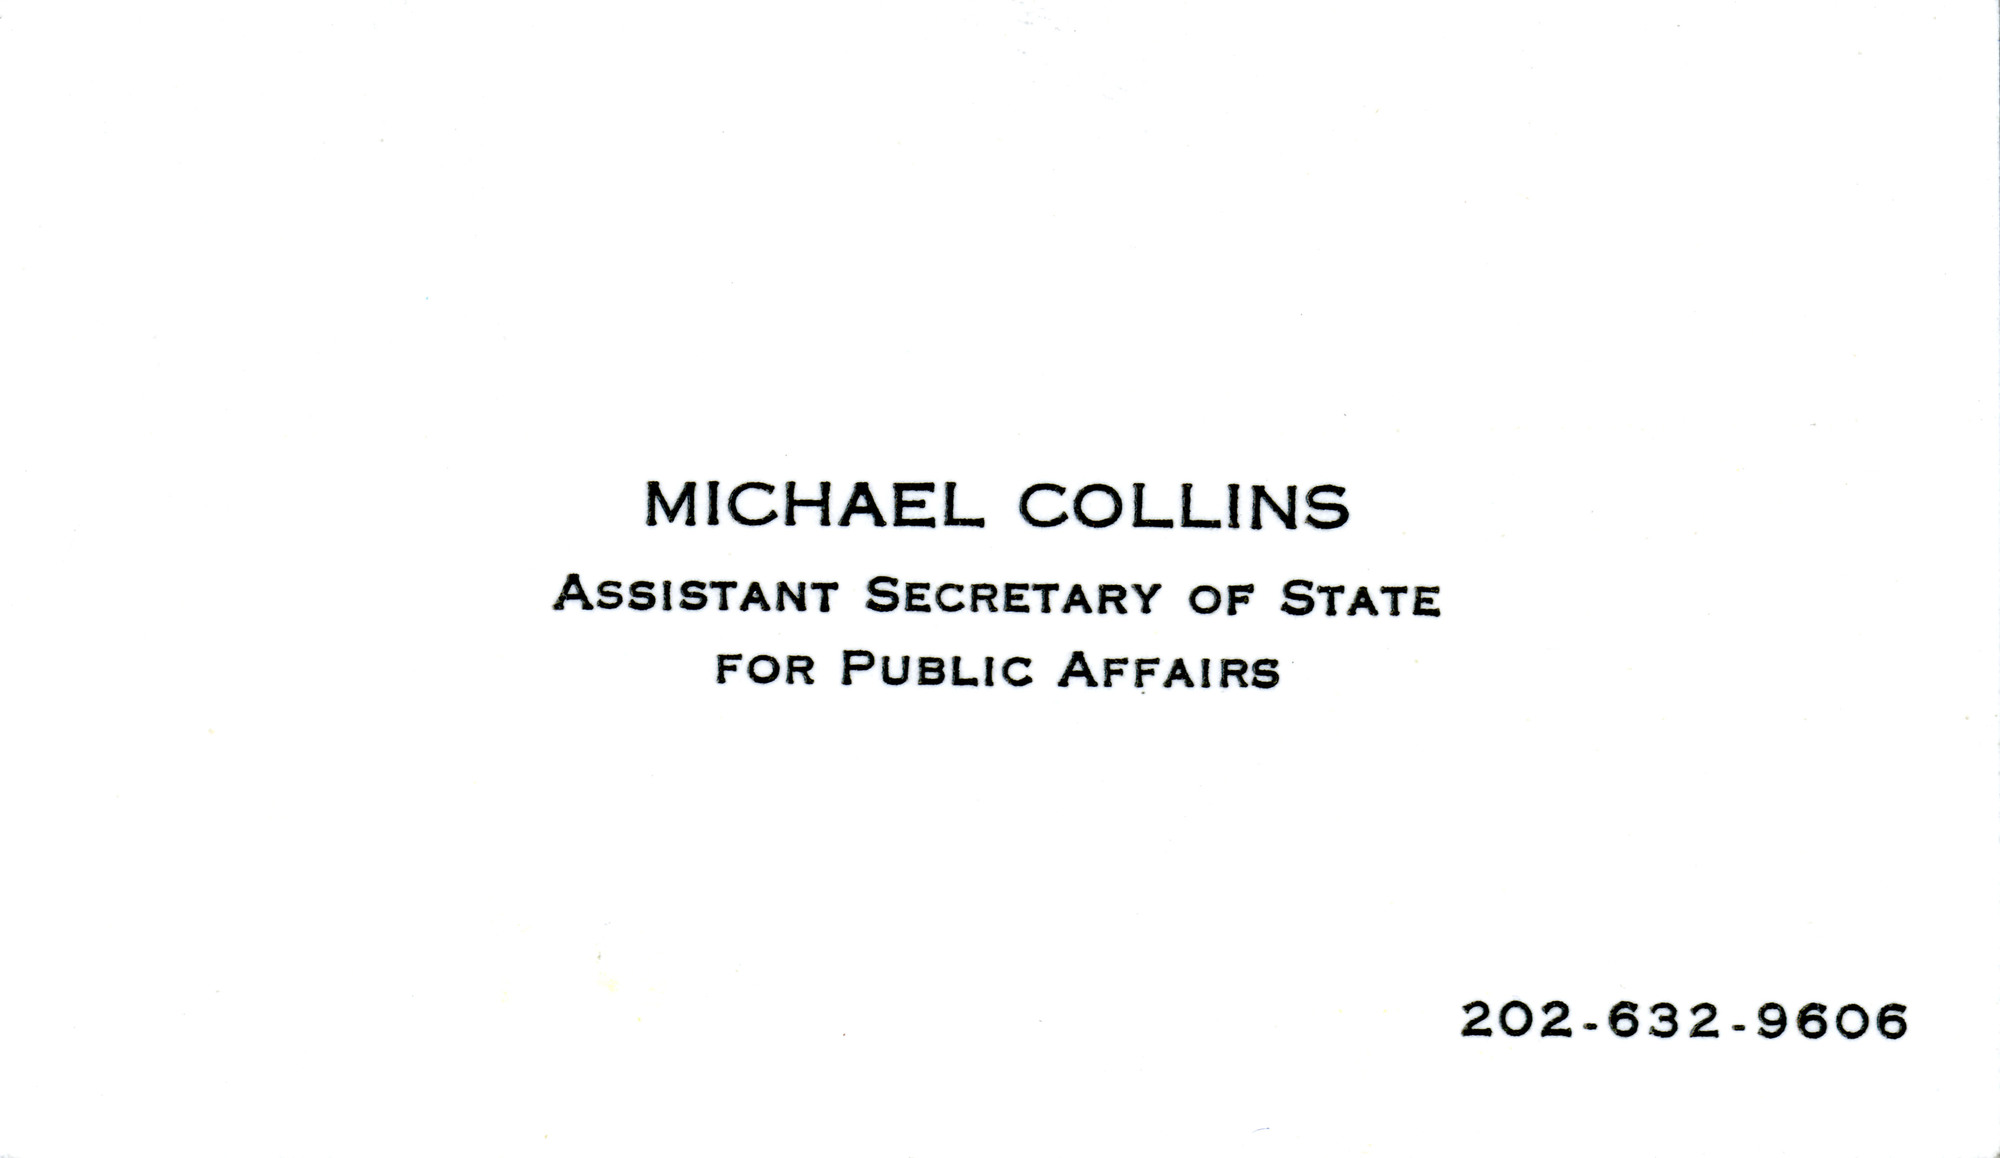 http://spec.lib.vt.edu/pickup/Omeka_upload/Ms1989-029_B18_F1_MichaelCollins_BusinessCard_NDa.jpg